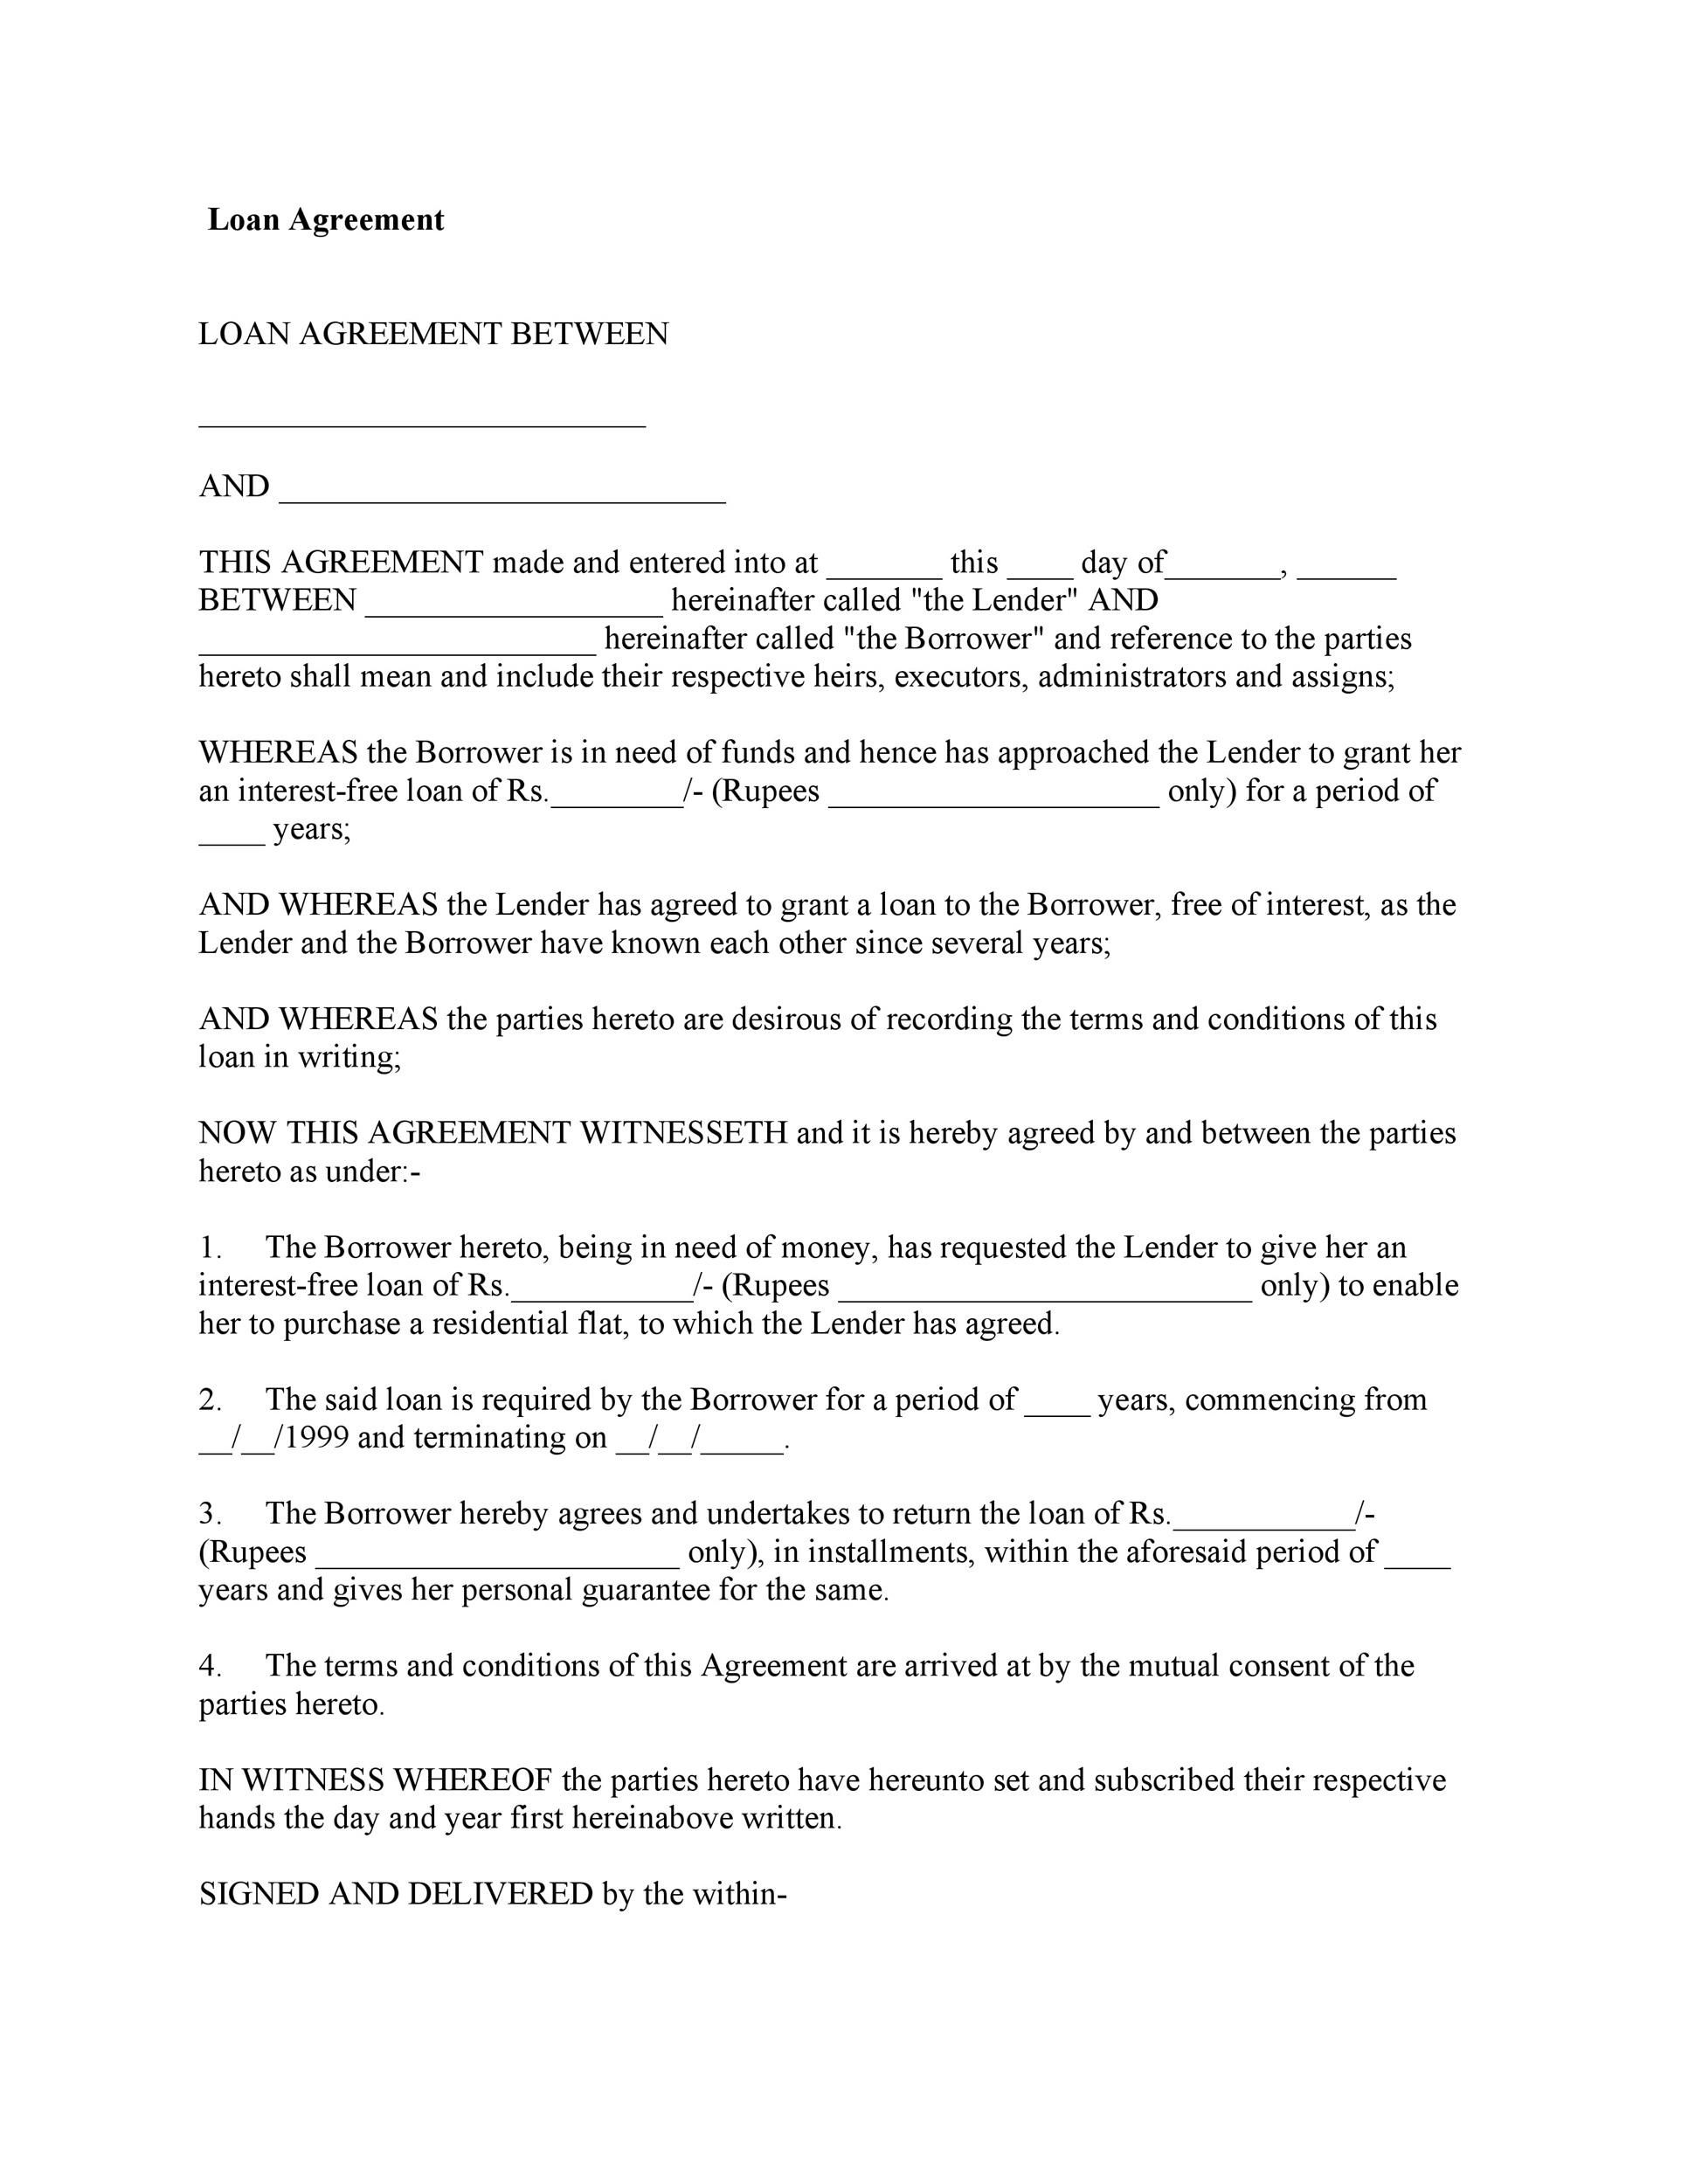 009 Fascinating Family Loan Agreement Template Image  Free Uk Friend And Simple AustraliaFull